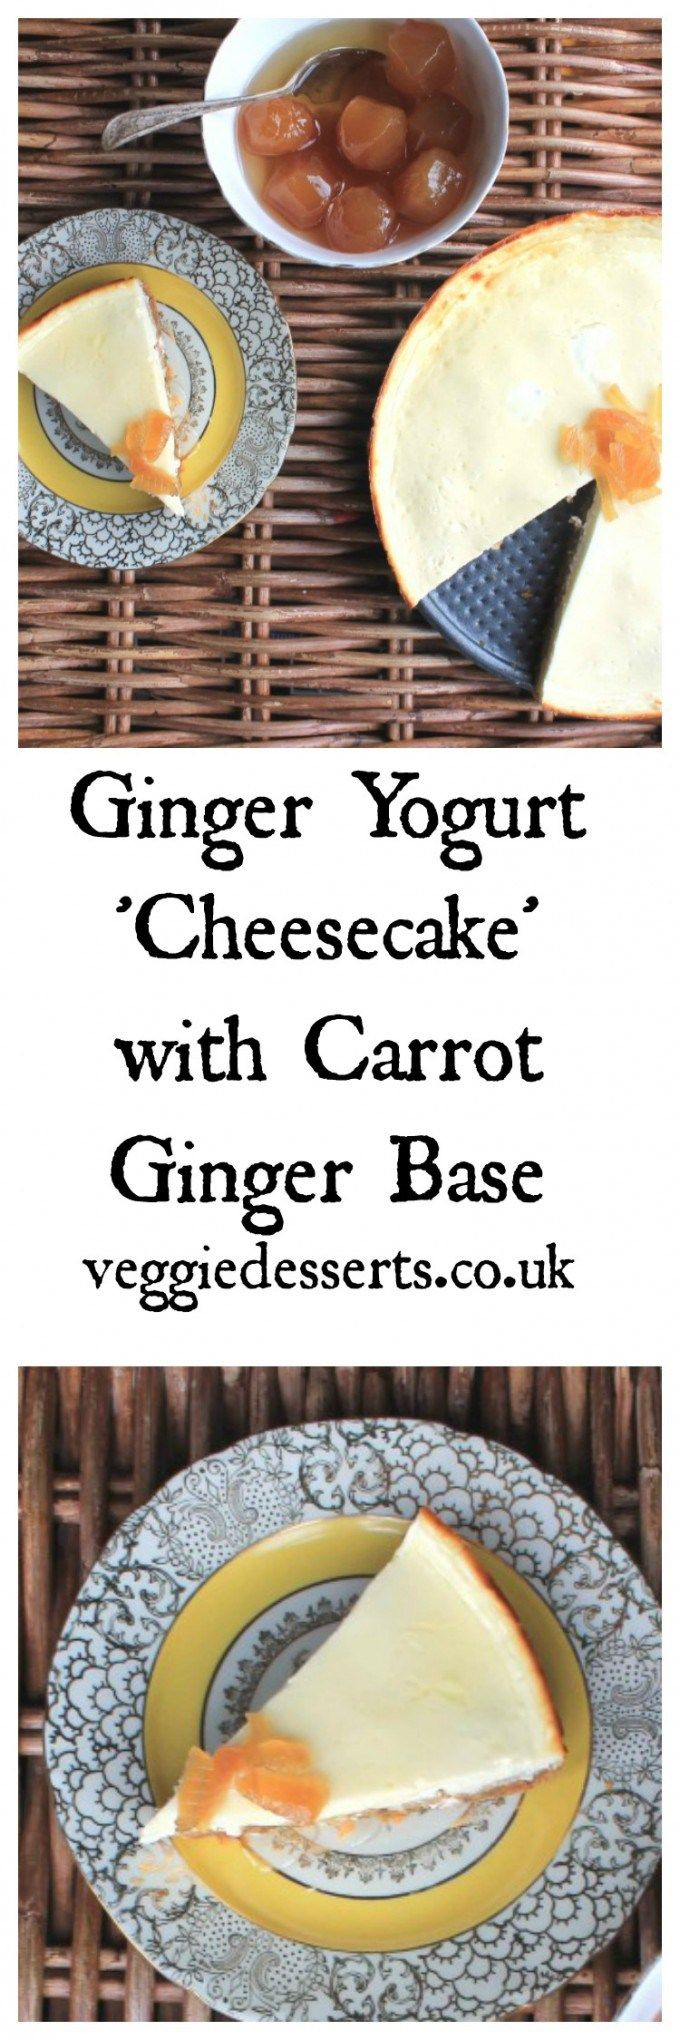 Ginger Yogurt 'Cheesecake' with a Carrot Ginger Base | Veggie Desserts Blog